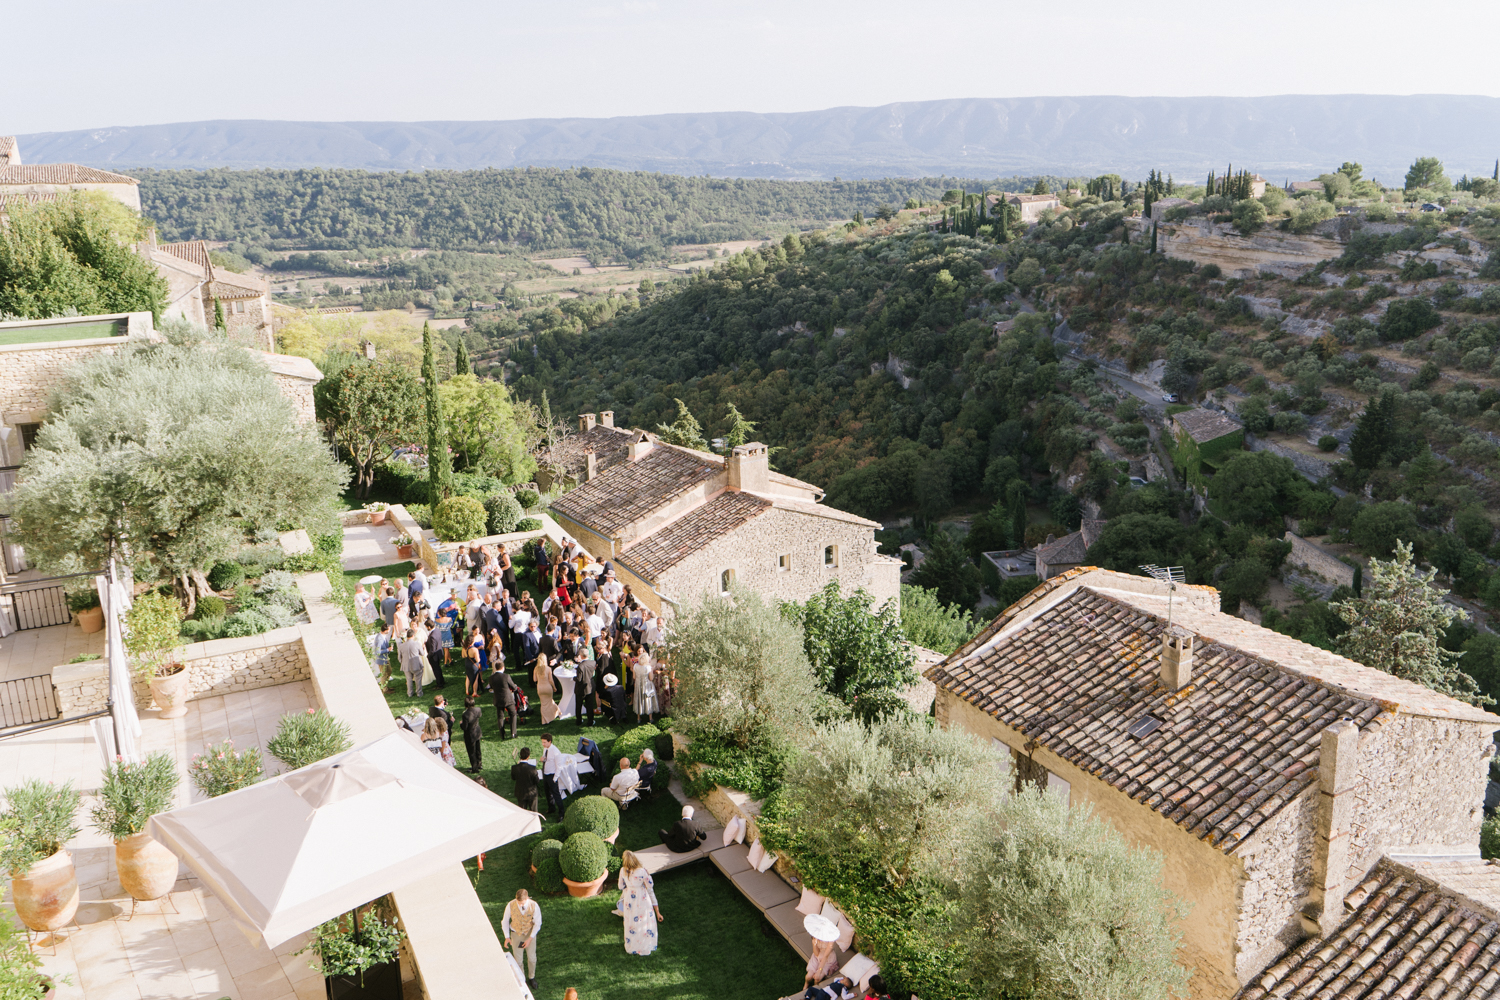 Guests mingle at a chateau in Gordes, France after the wedding ceremony; Sylvie Gil Photography